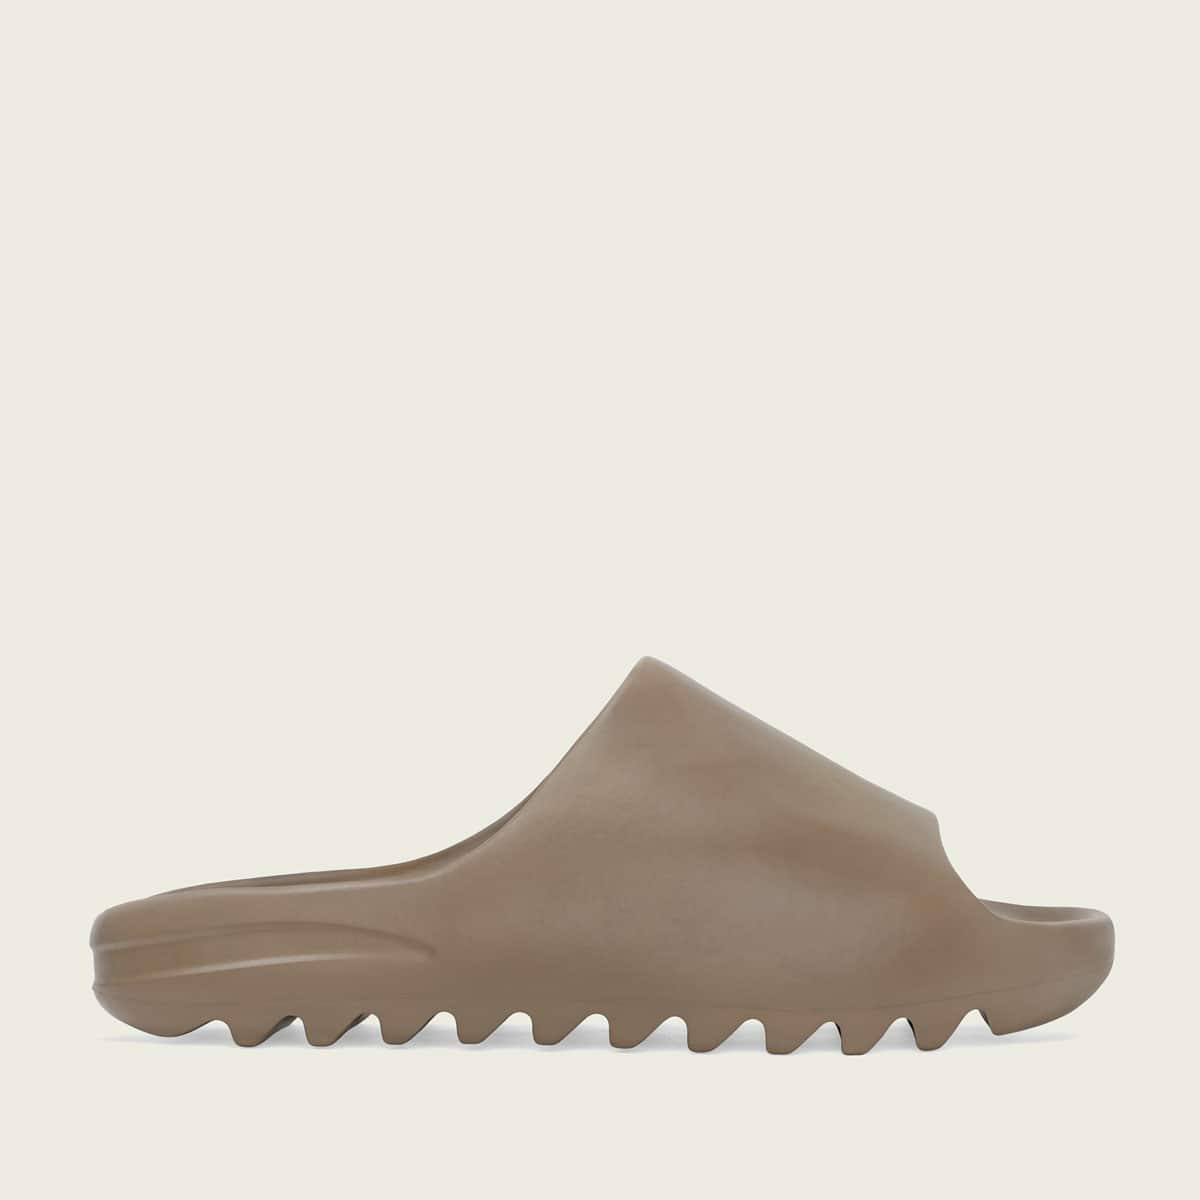 "adidas YEEZY SLIDE""EARTH BROWN"" BROWN/EARTH BROWN/EARTH BROWN 20SS-S_photo_large"